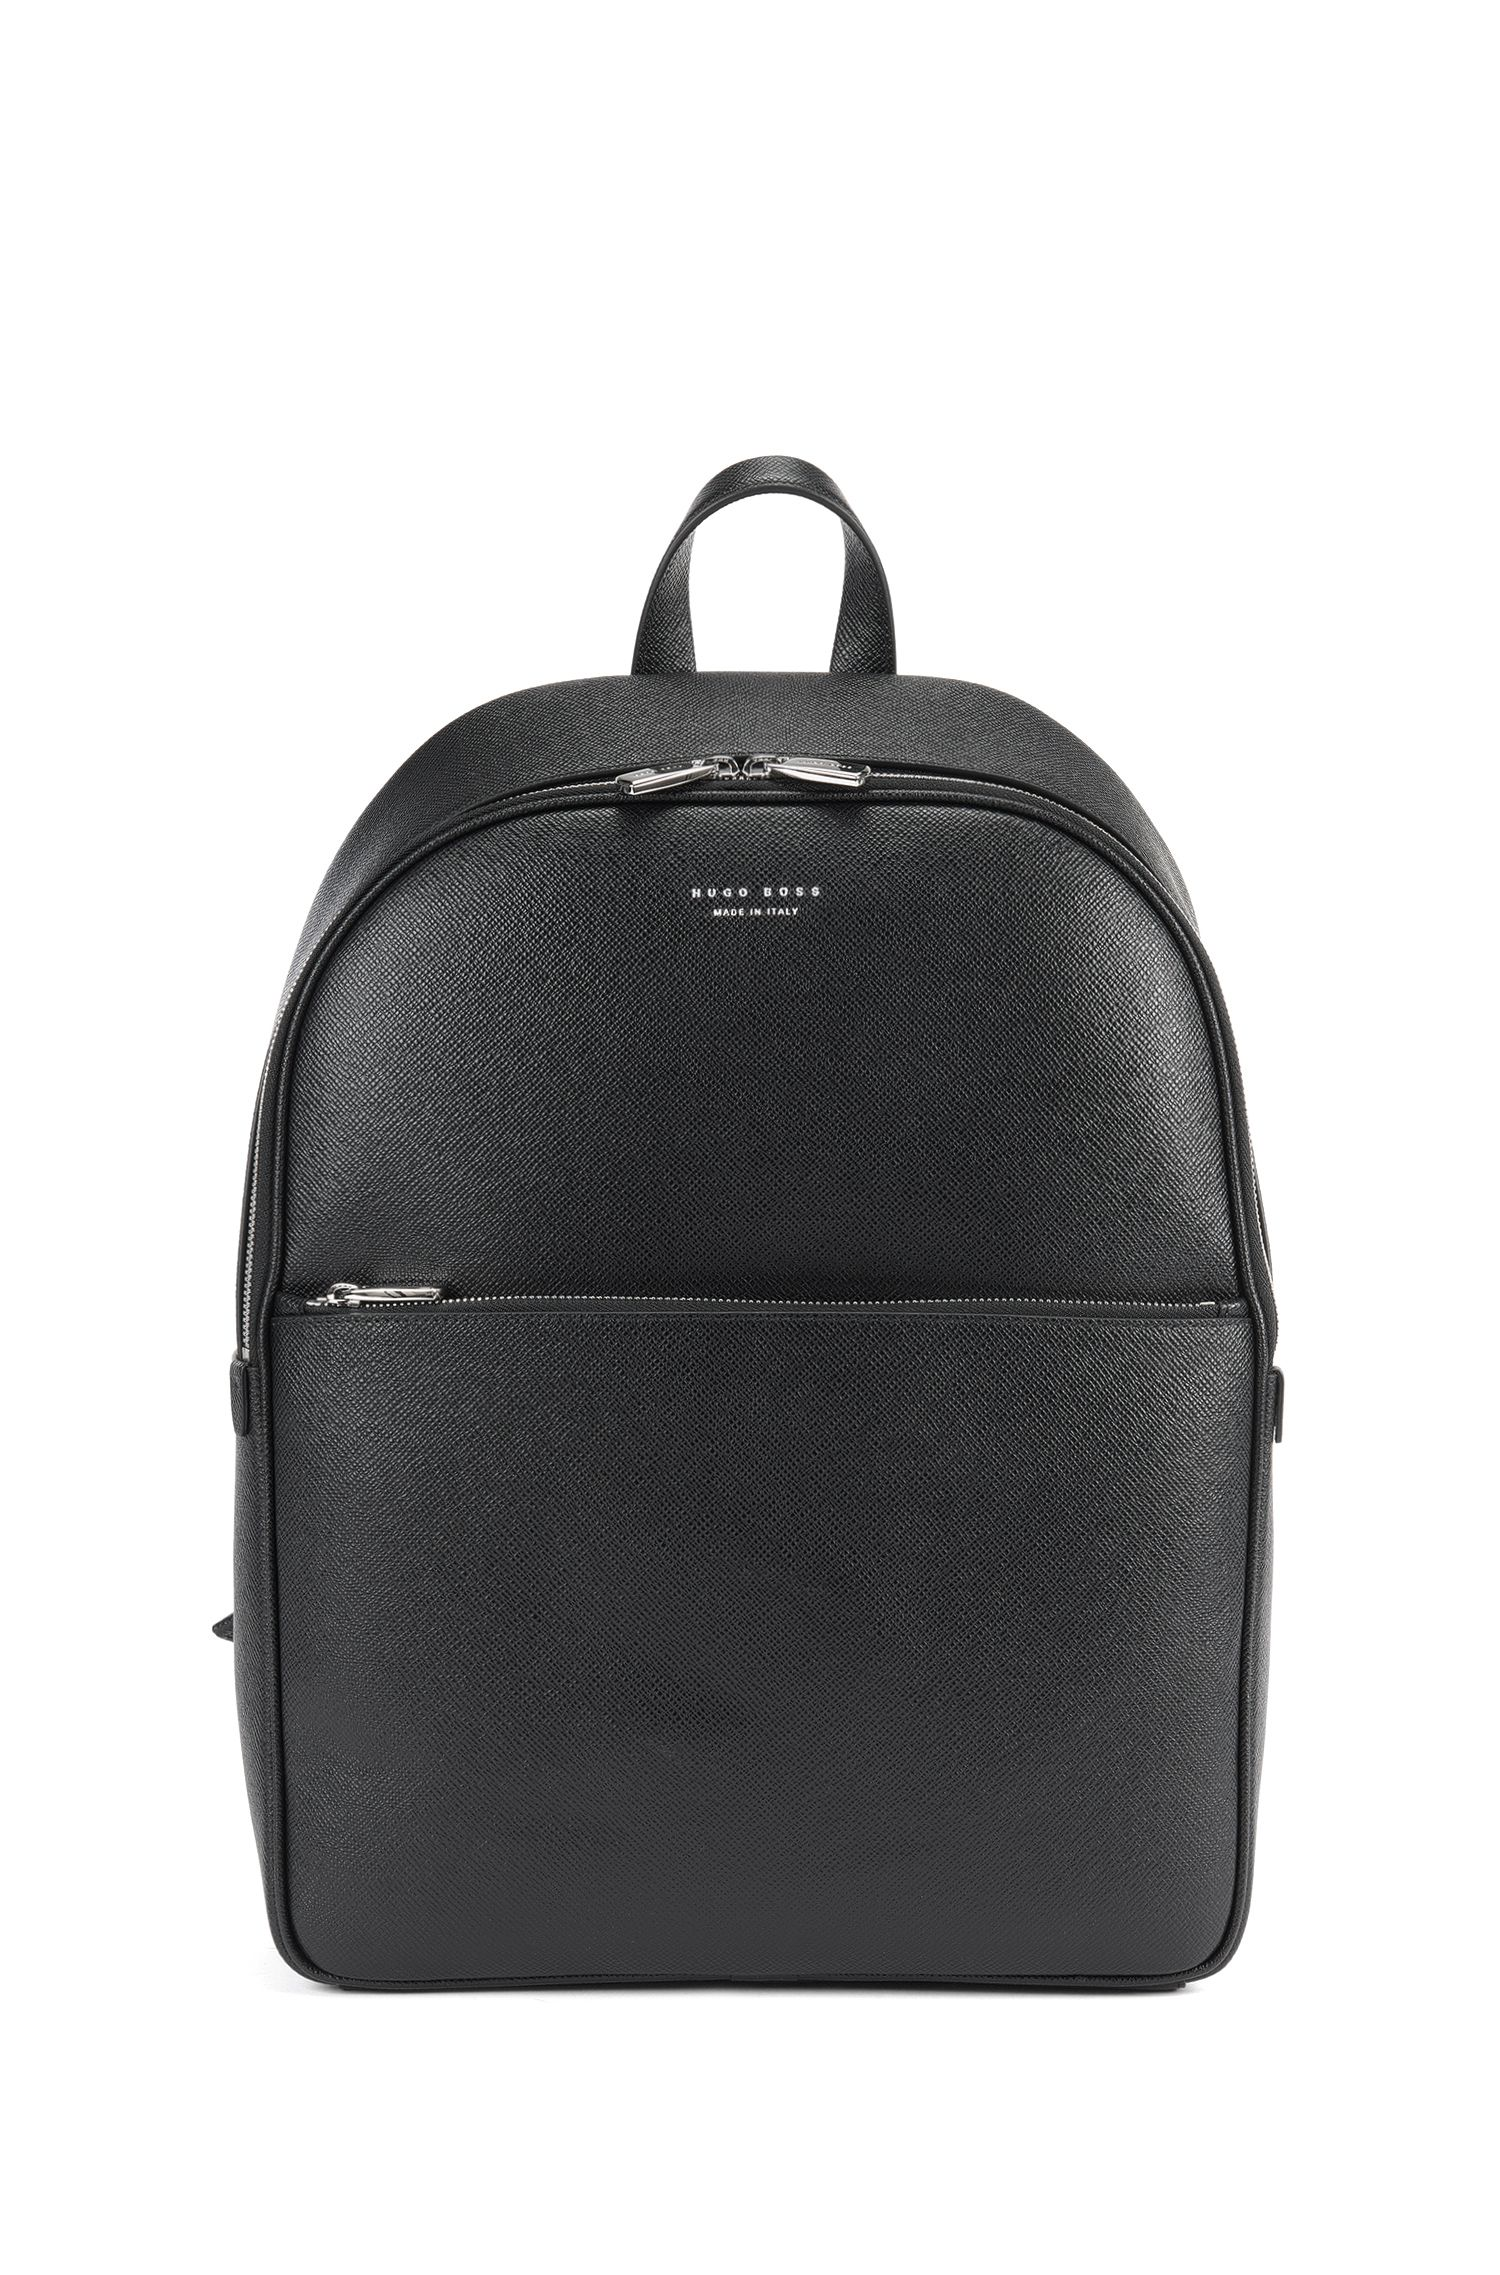 Signature Collection Rucksack aus Palmellato-Leder